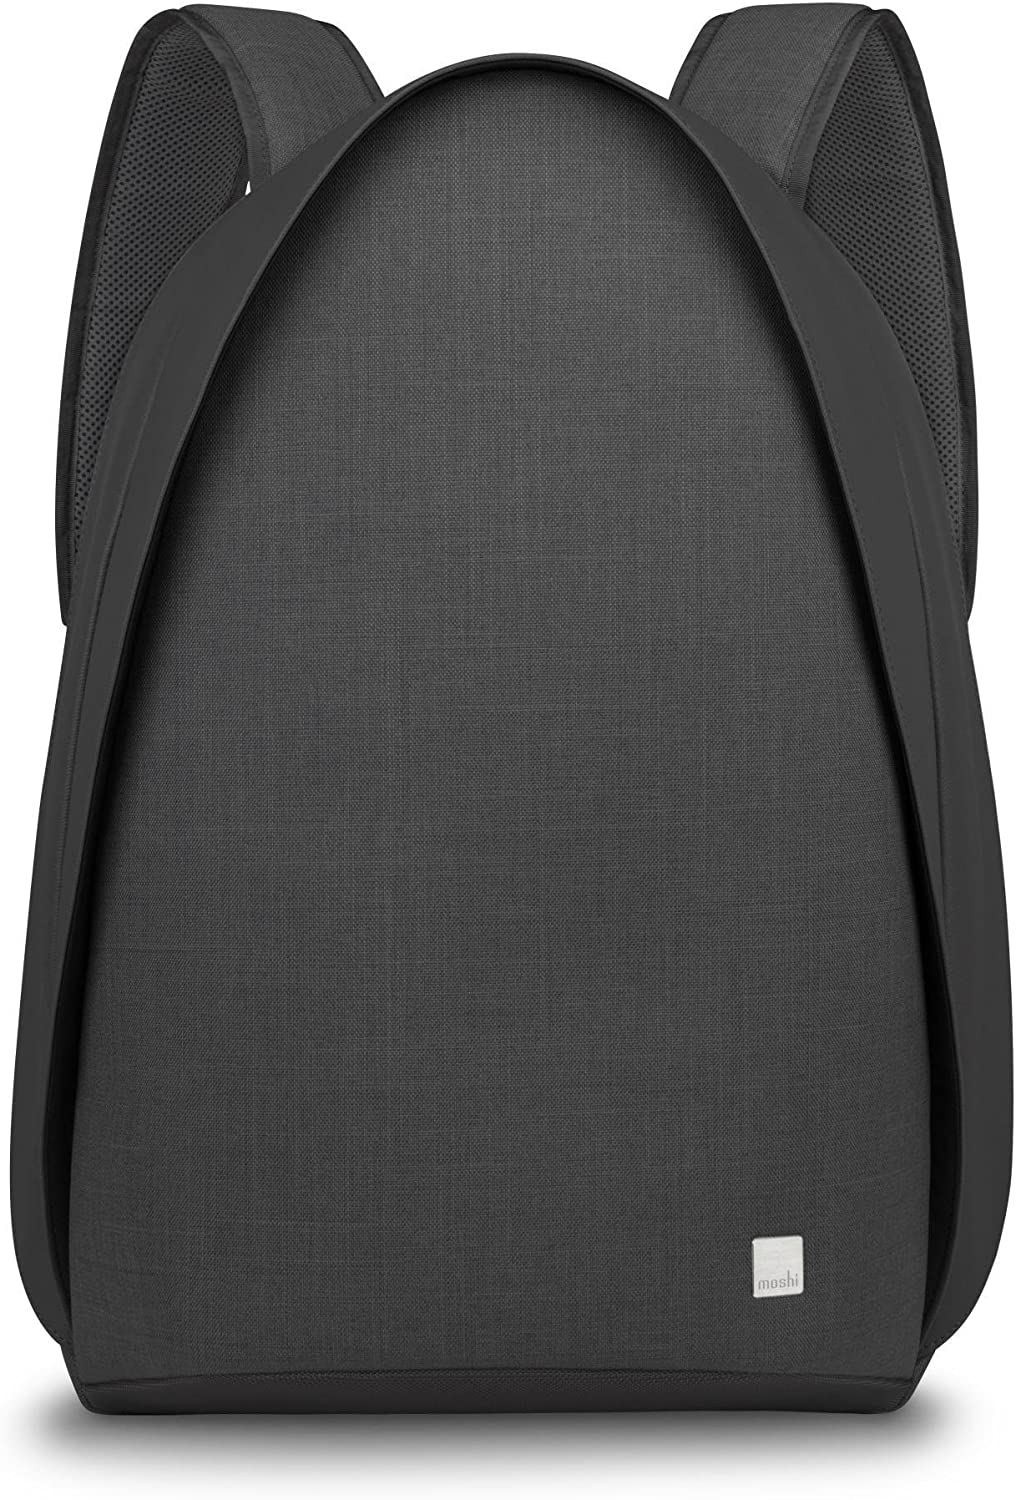 Moshi 99MO110001 Tego Anti-Theft Backpack with USB Charging Port, Water Resistant, Charcoal Black